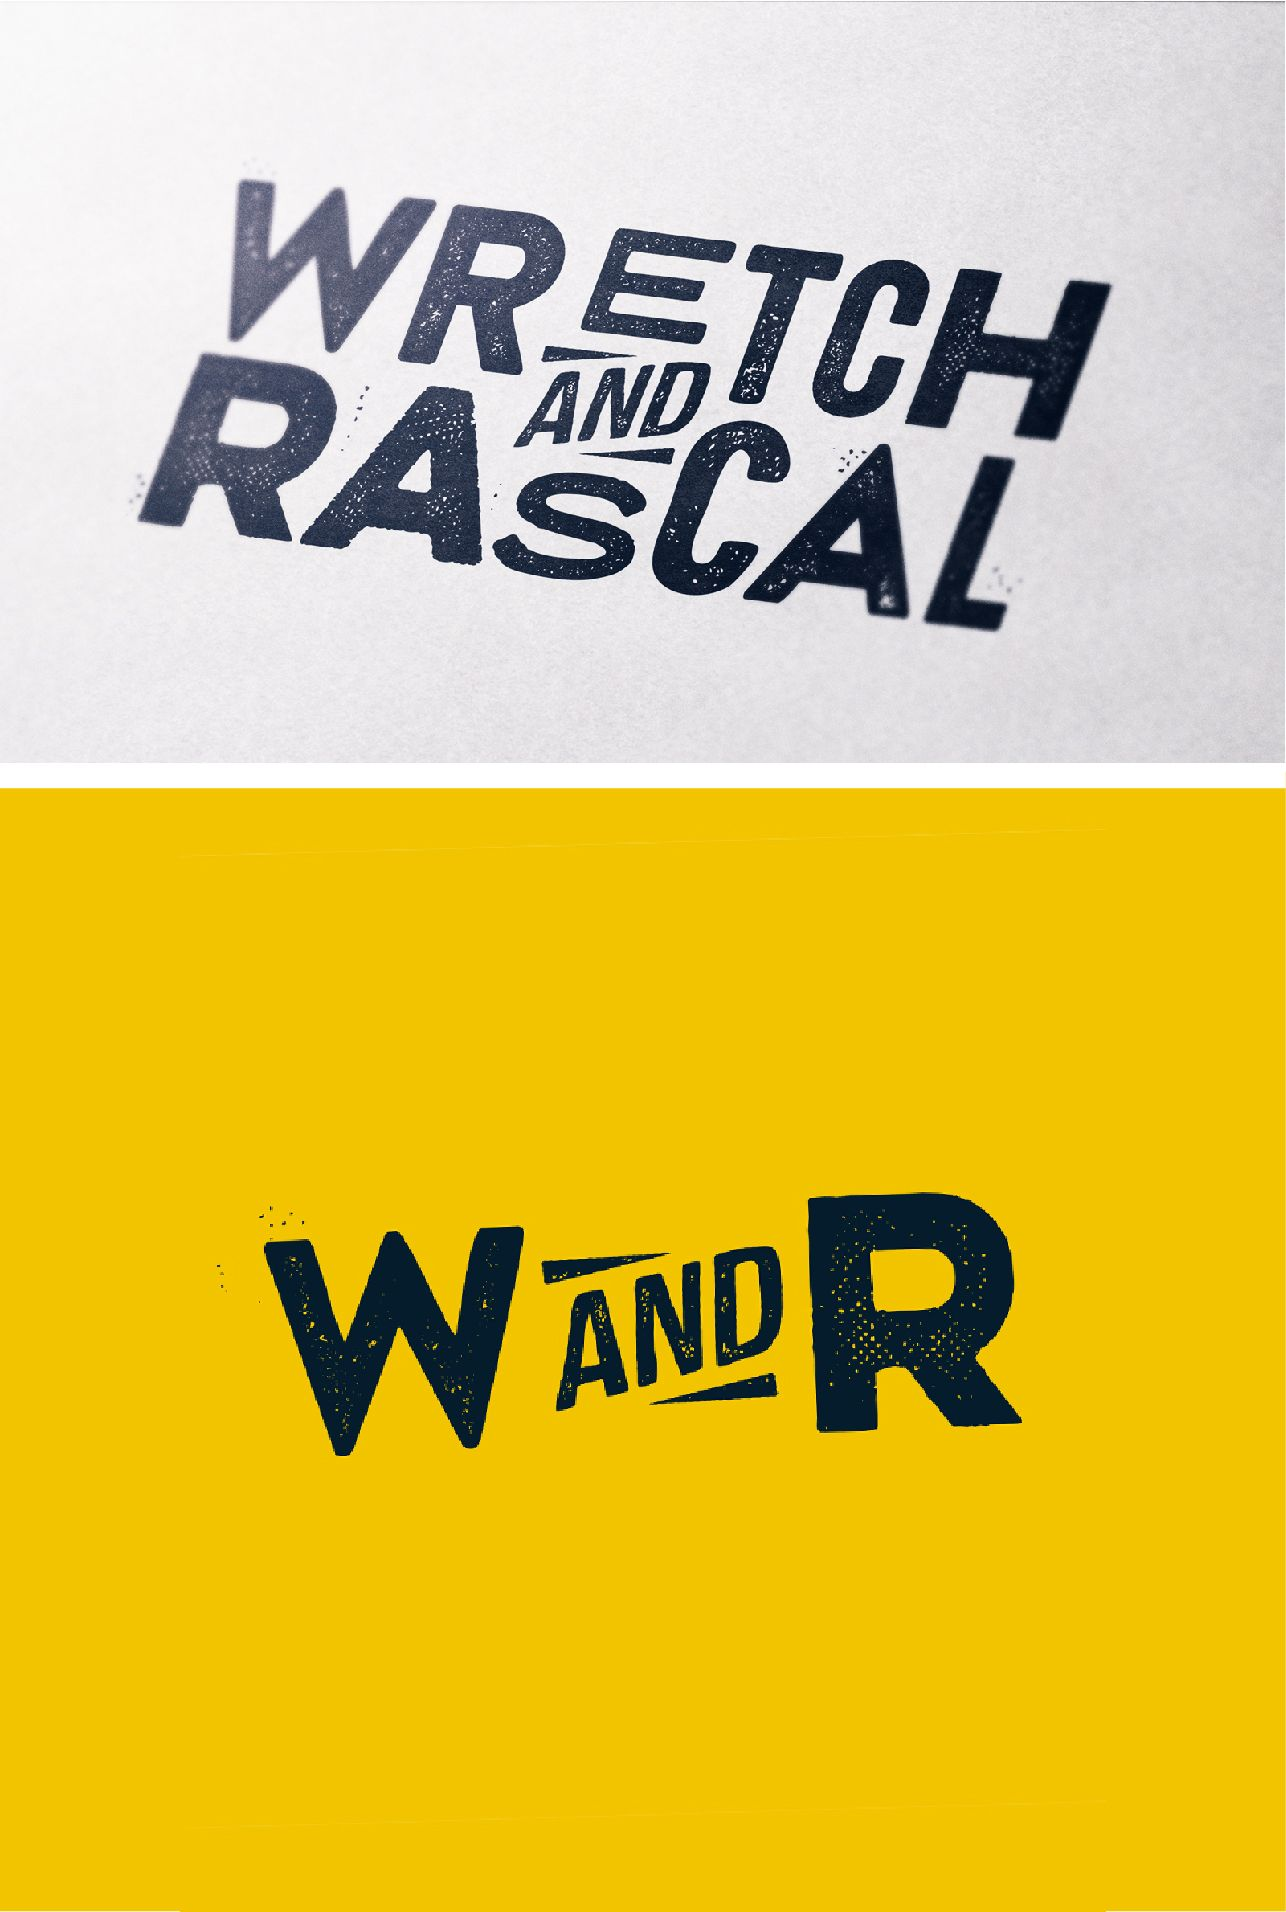 A Creative Duo From Leicester, Wretch & Rascal Offer